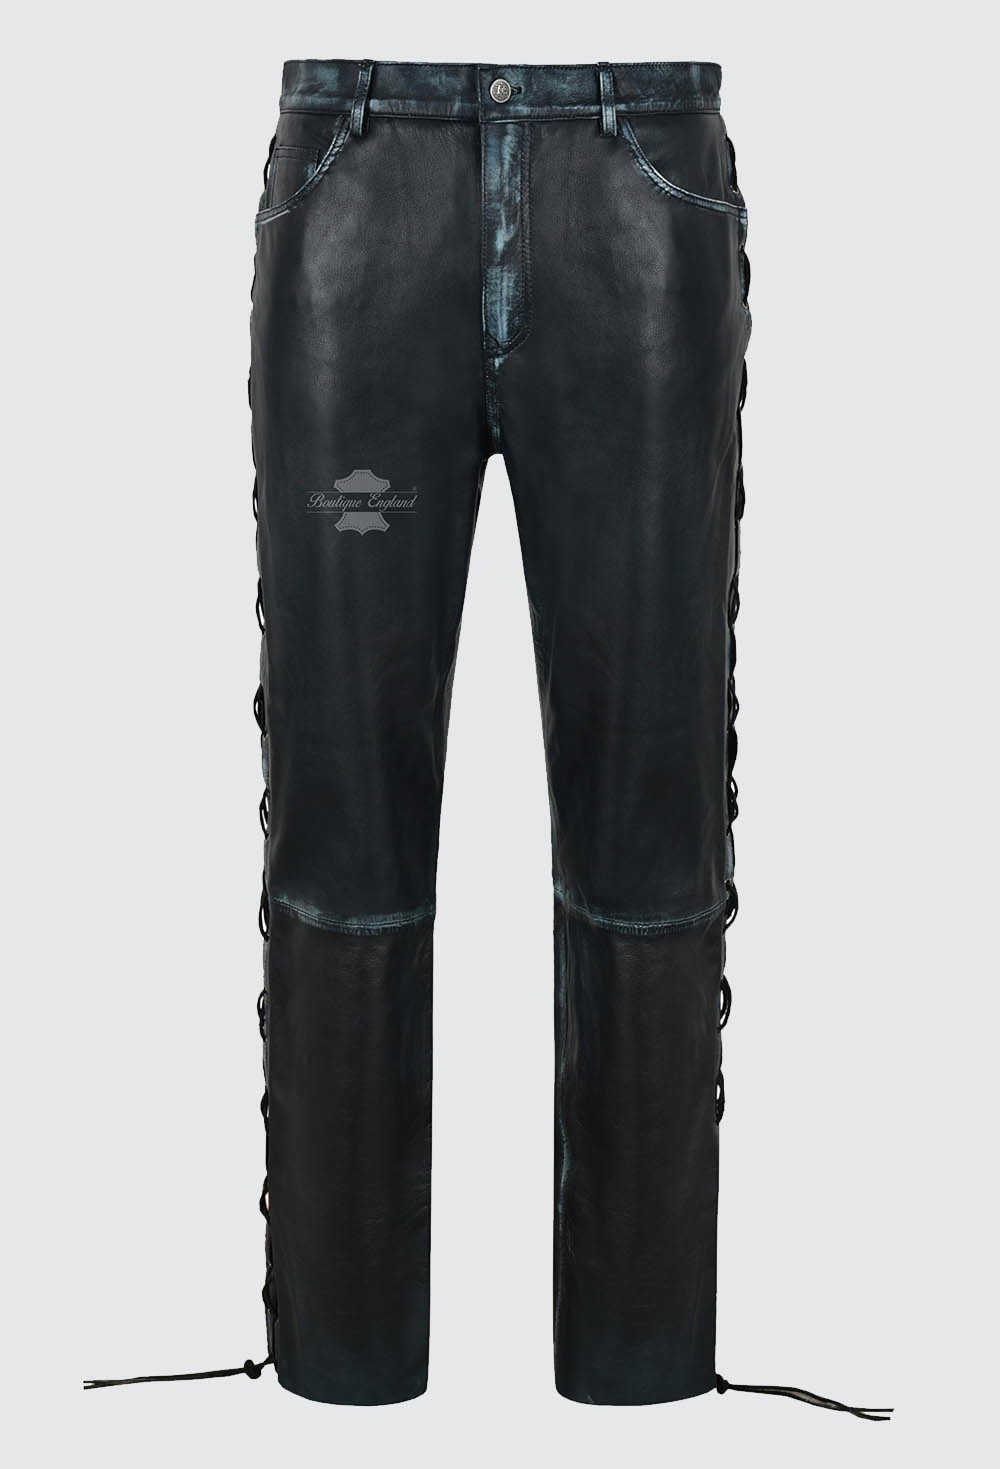 Men's Biker Laced Navy Vintage Leather Trousers 100% Lambskin Riding Pants 00126